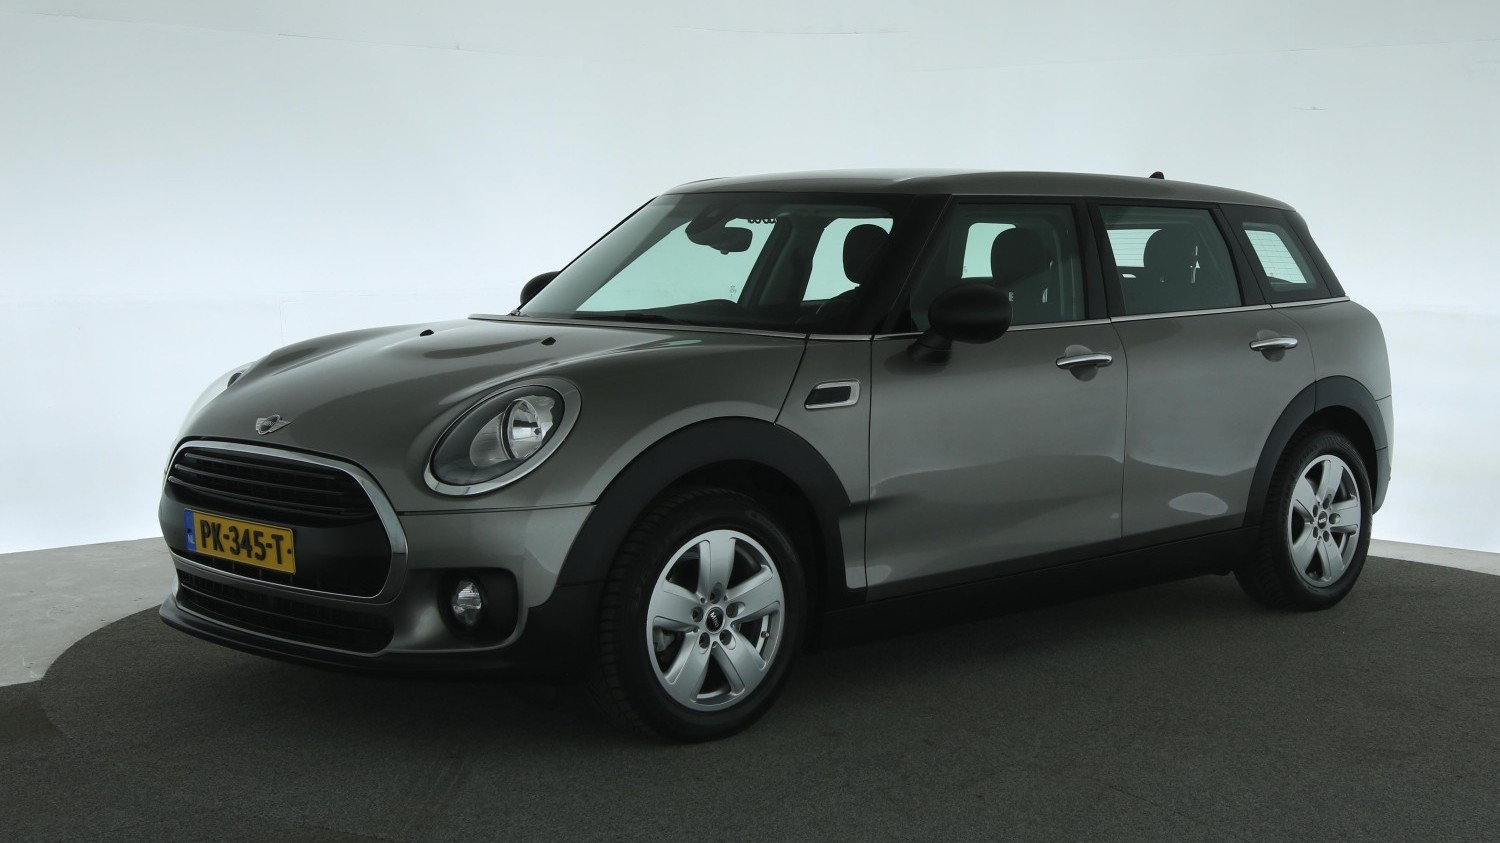 Mini Clubman Station 2017 PK-345-T 1